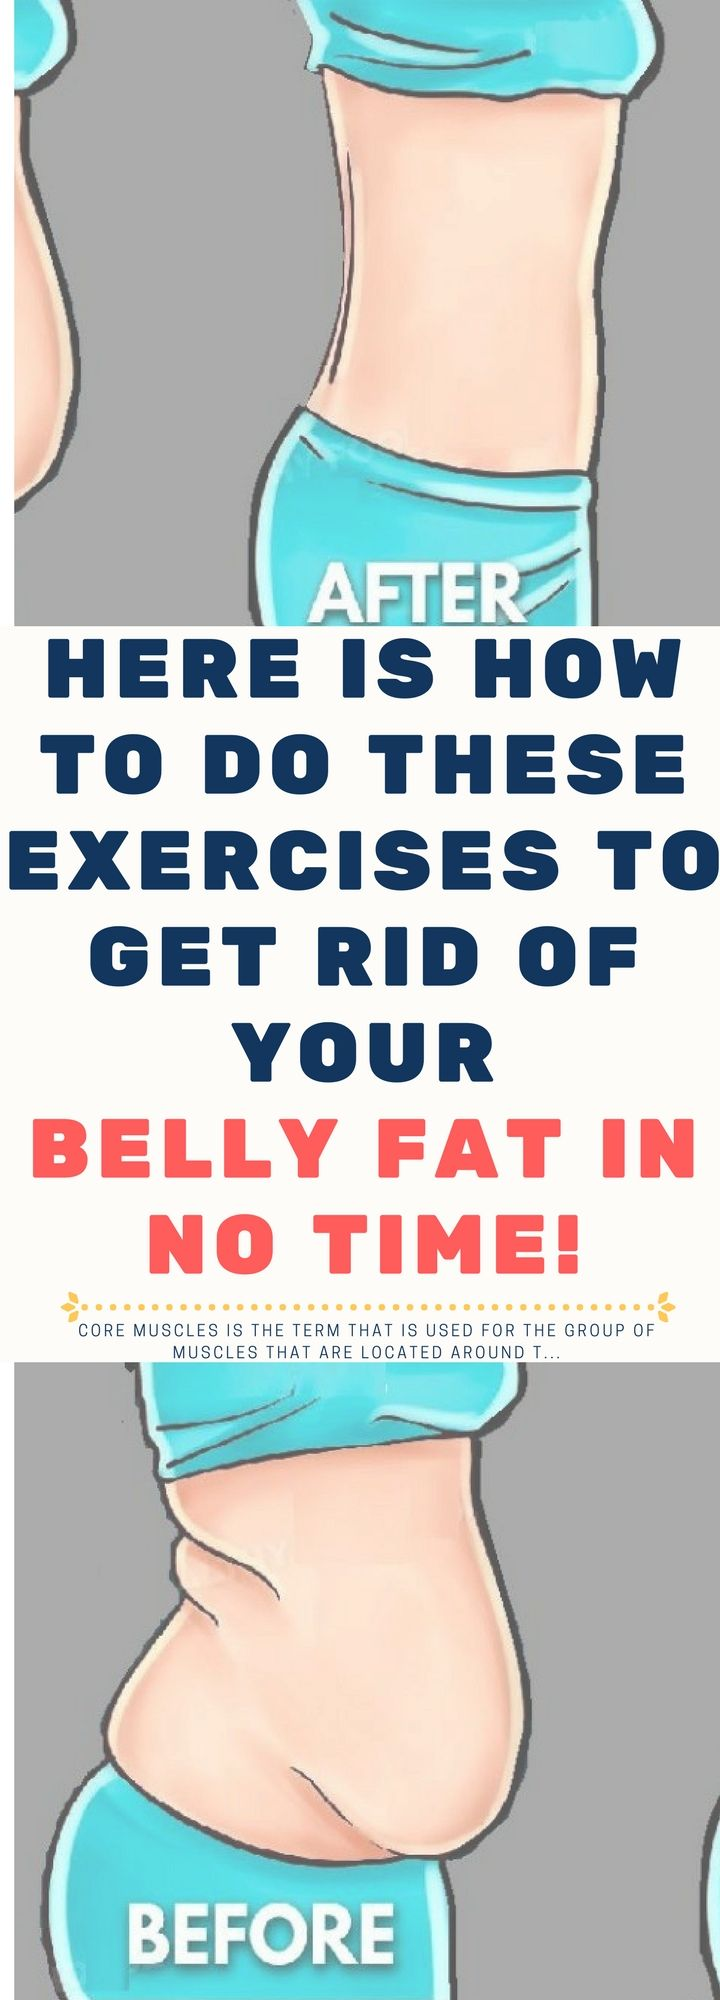 Here Is How To Do These Exercises To Get Rid Of Your Belly Fat In No Timee.! Read!! #bellyfat #fitnessgirl #fitnessmom #transformations #fitnesslife #abs #train #healthy #healthylifestyle #sisepuede #tattoo #tattoossometimes #fridaynight #gymsession #weightloss #legsgains #ladybeast #triplet #fitnessjourney #fitnesslifestyle #fitnessfreak #girlswholift #nopainnogain #getstrong #mondaymiles #chestday #seenonmyrun #trainhard #strengthtraining #physiquefreak #catsofinstagram